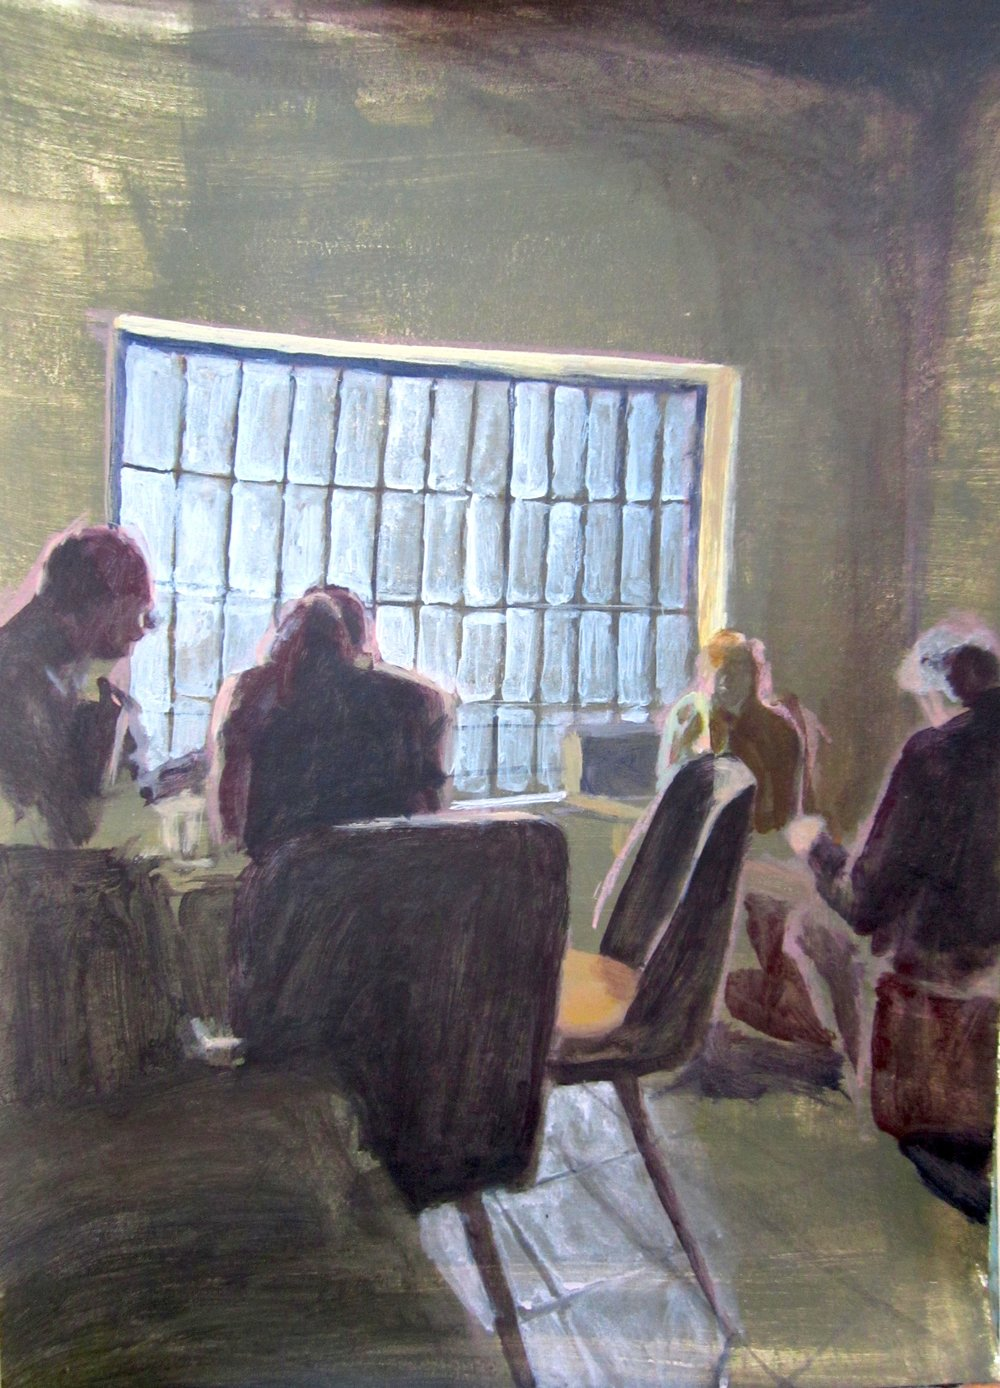 A painting from 2012 in Pécs.